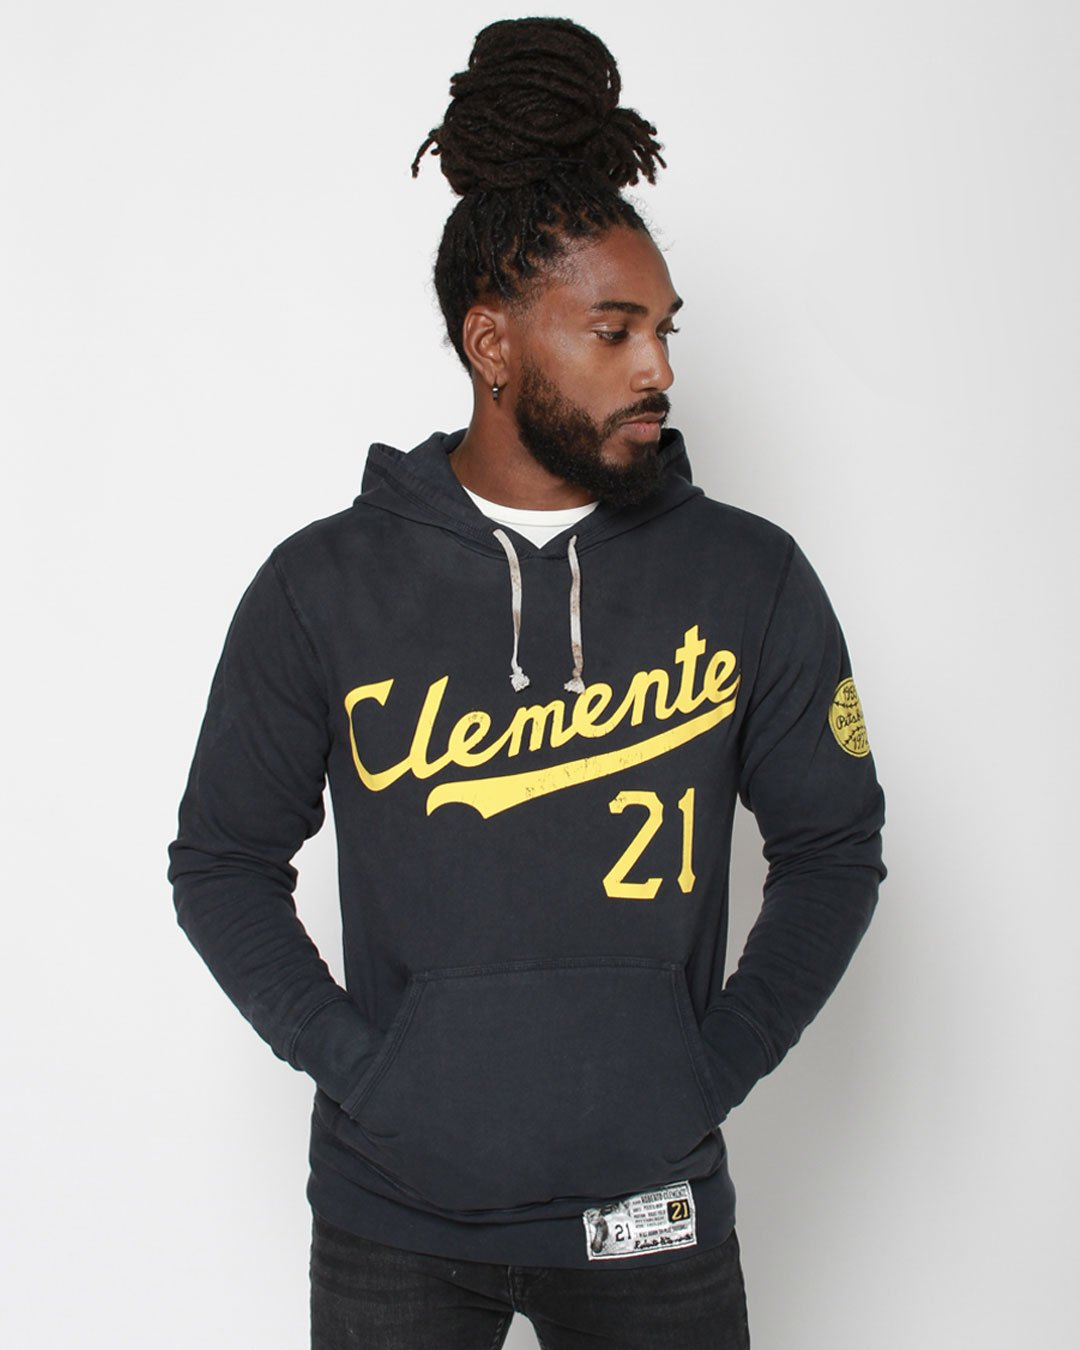 Roberto Clemente 21 Pullover Hoody